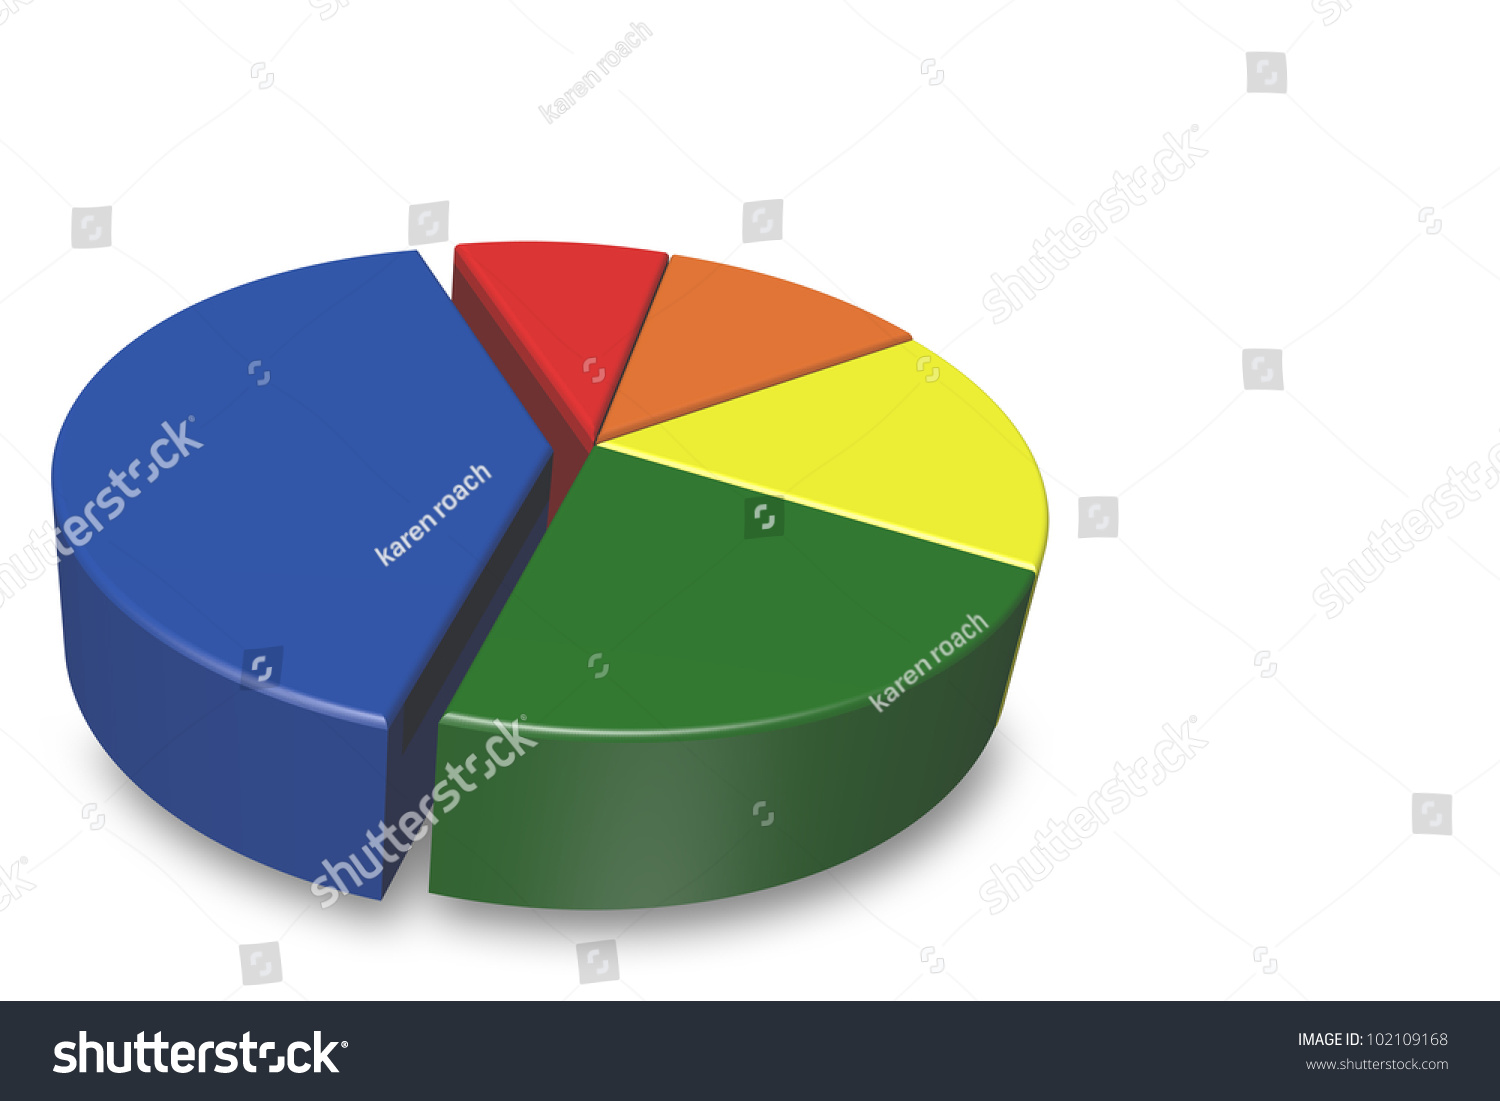 Blank 3d pie chart isolated on stock illustration 102109168 blank 3d pie chart isolated on a white background and empty for your text to be nvjuhfo Gallery